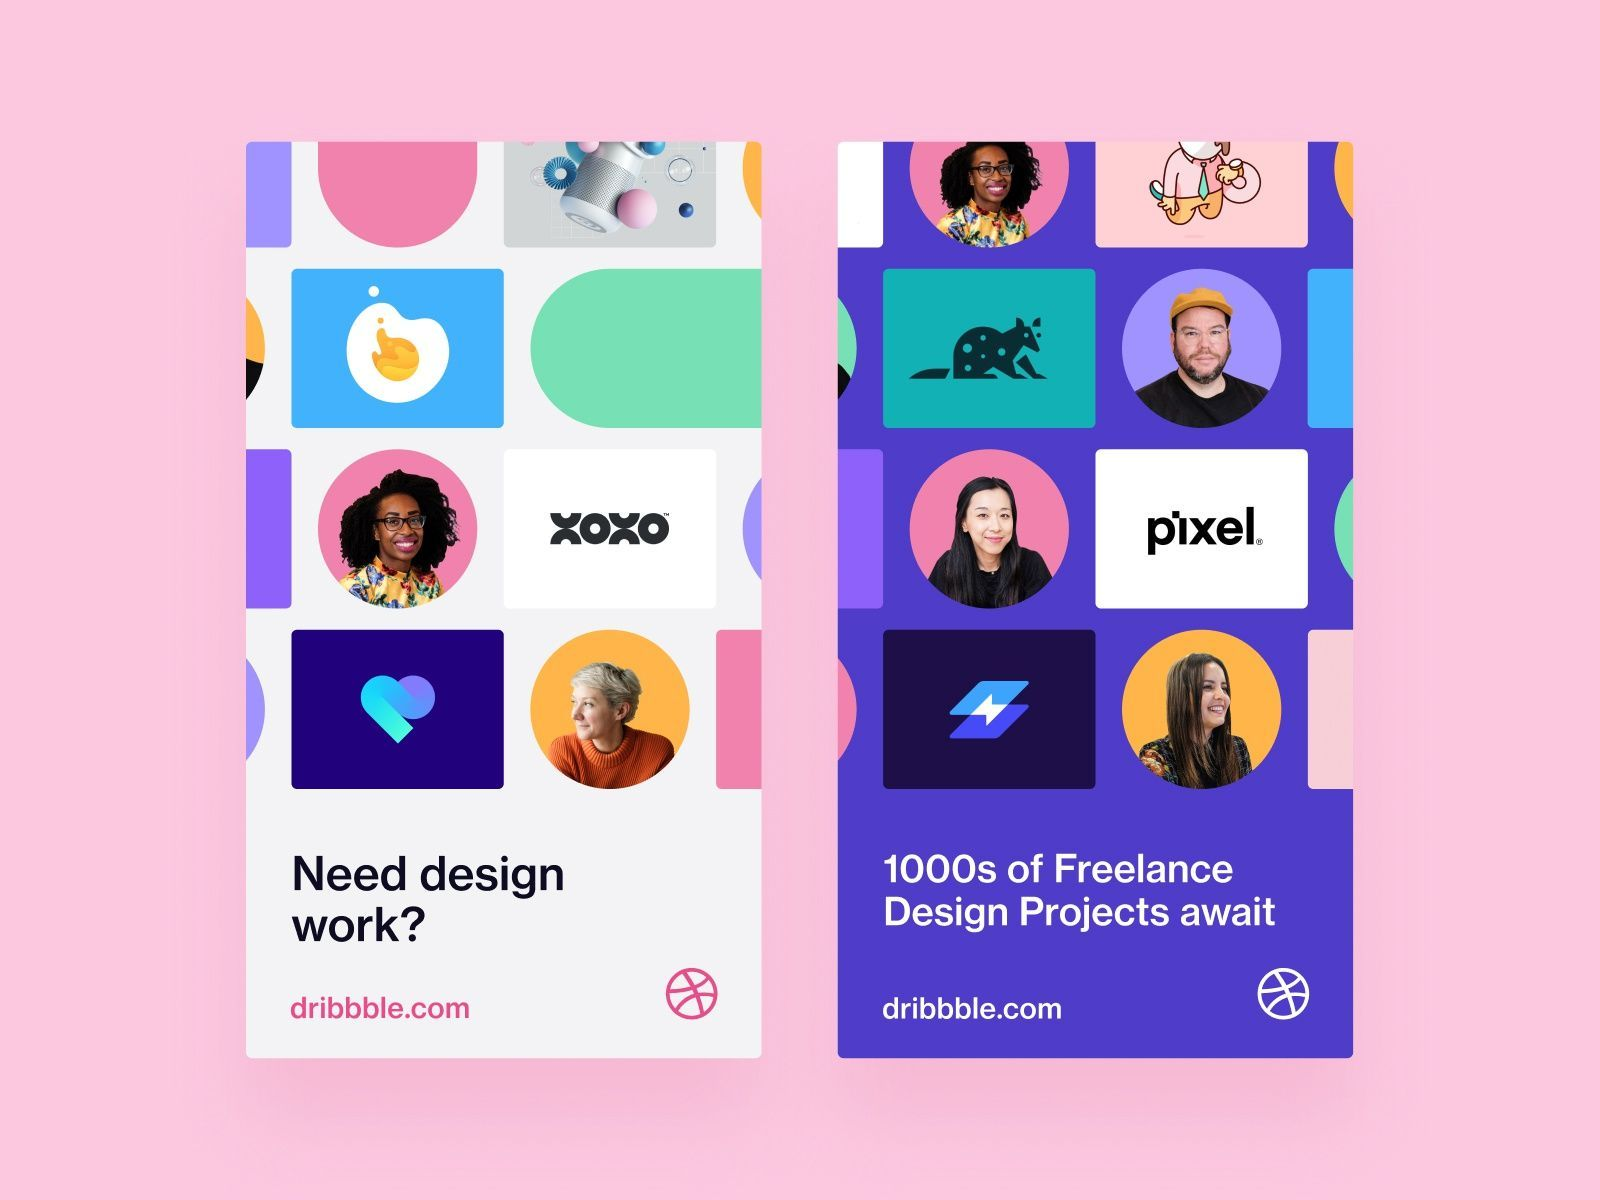 We Recently Rolled Out These New Social Media Ad Designs The Design Was Based Around Instagram Story Ads Instagram Ads Design Social Media Design Inspiration